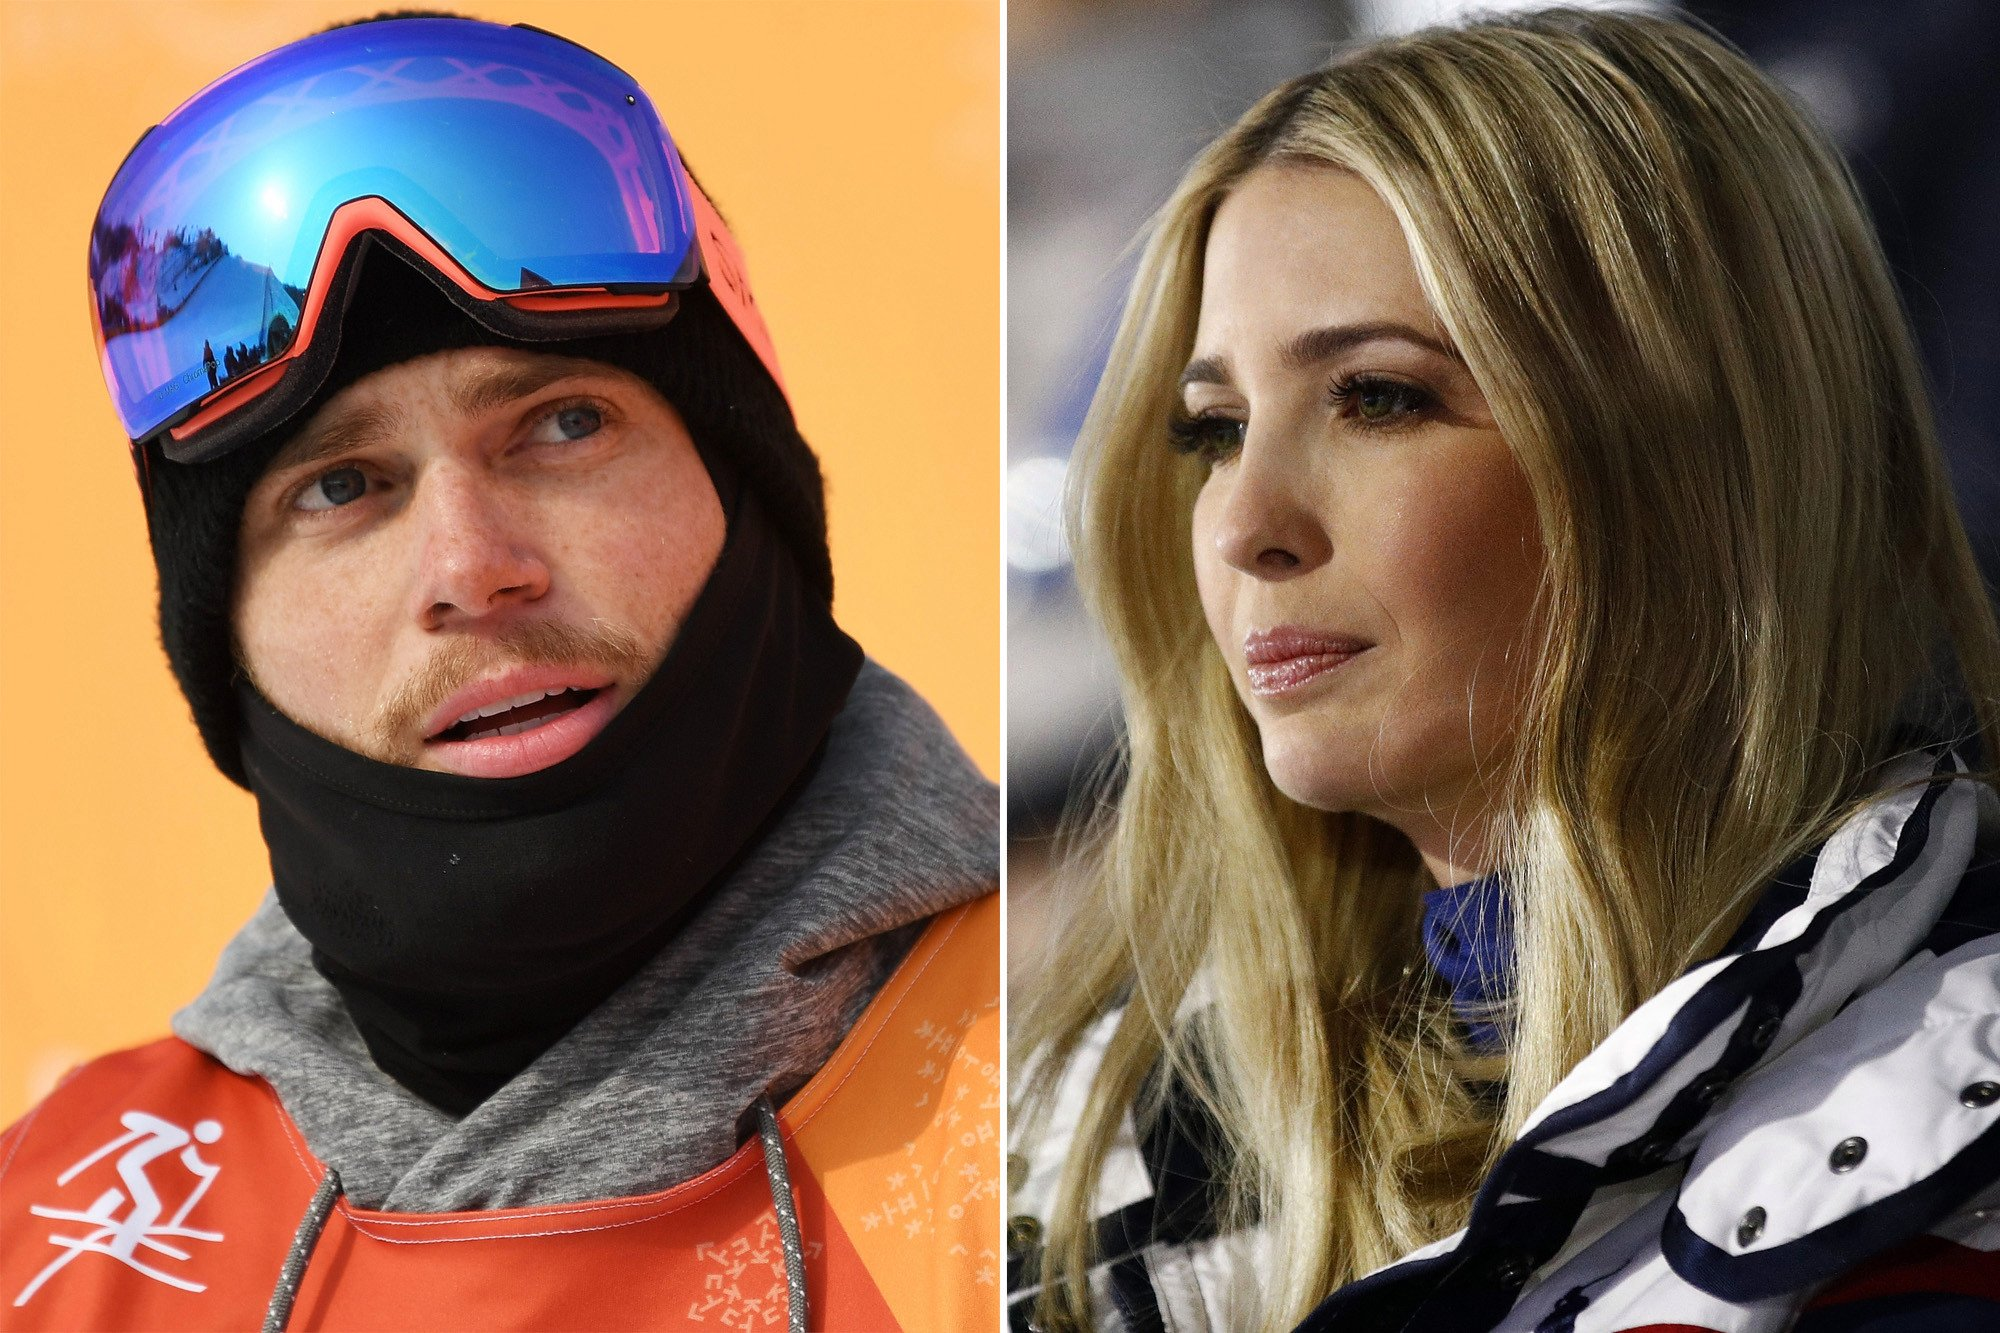 Olympian slammed for criticizing Ivanka Trump